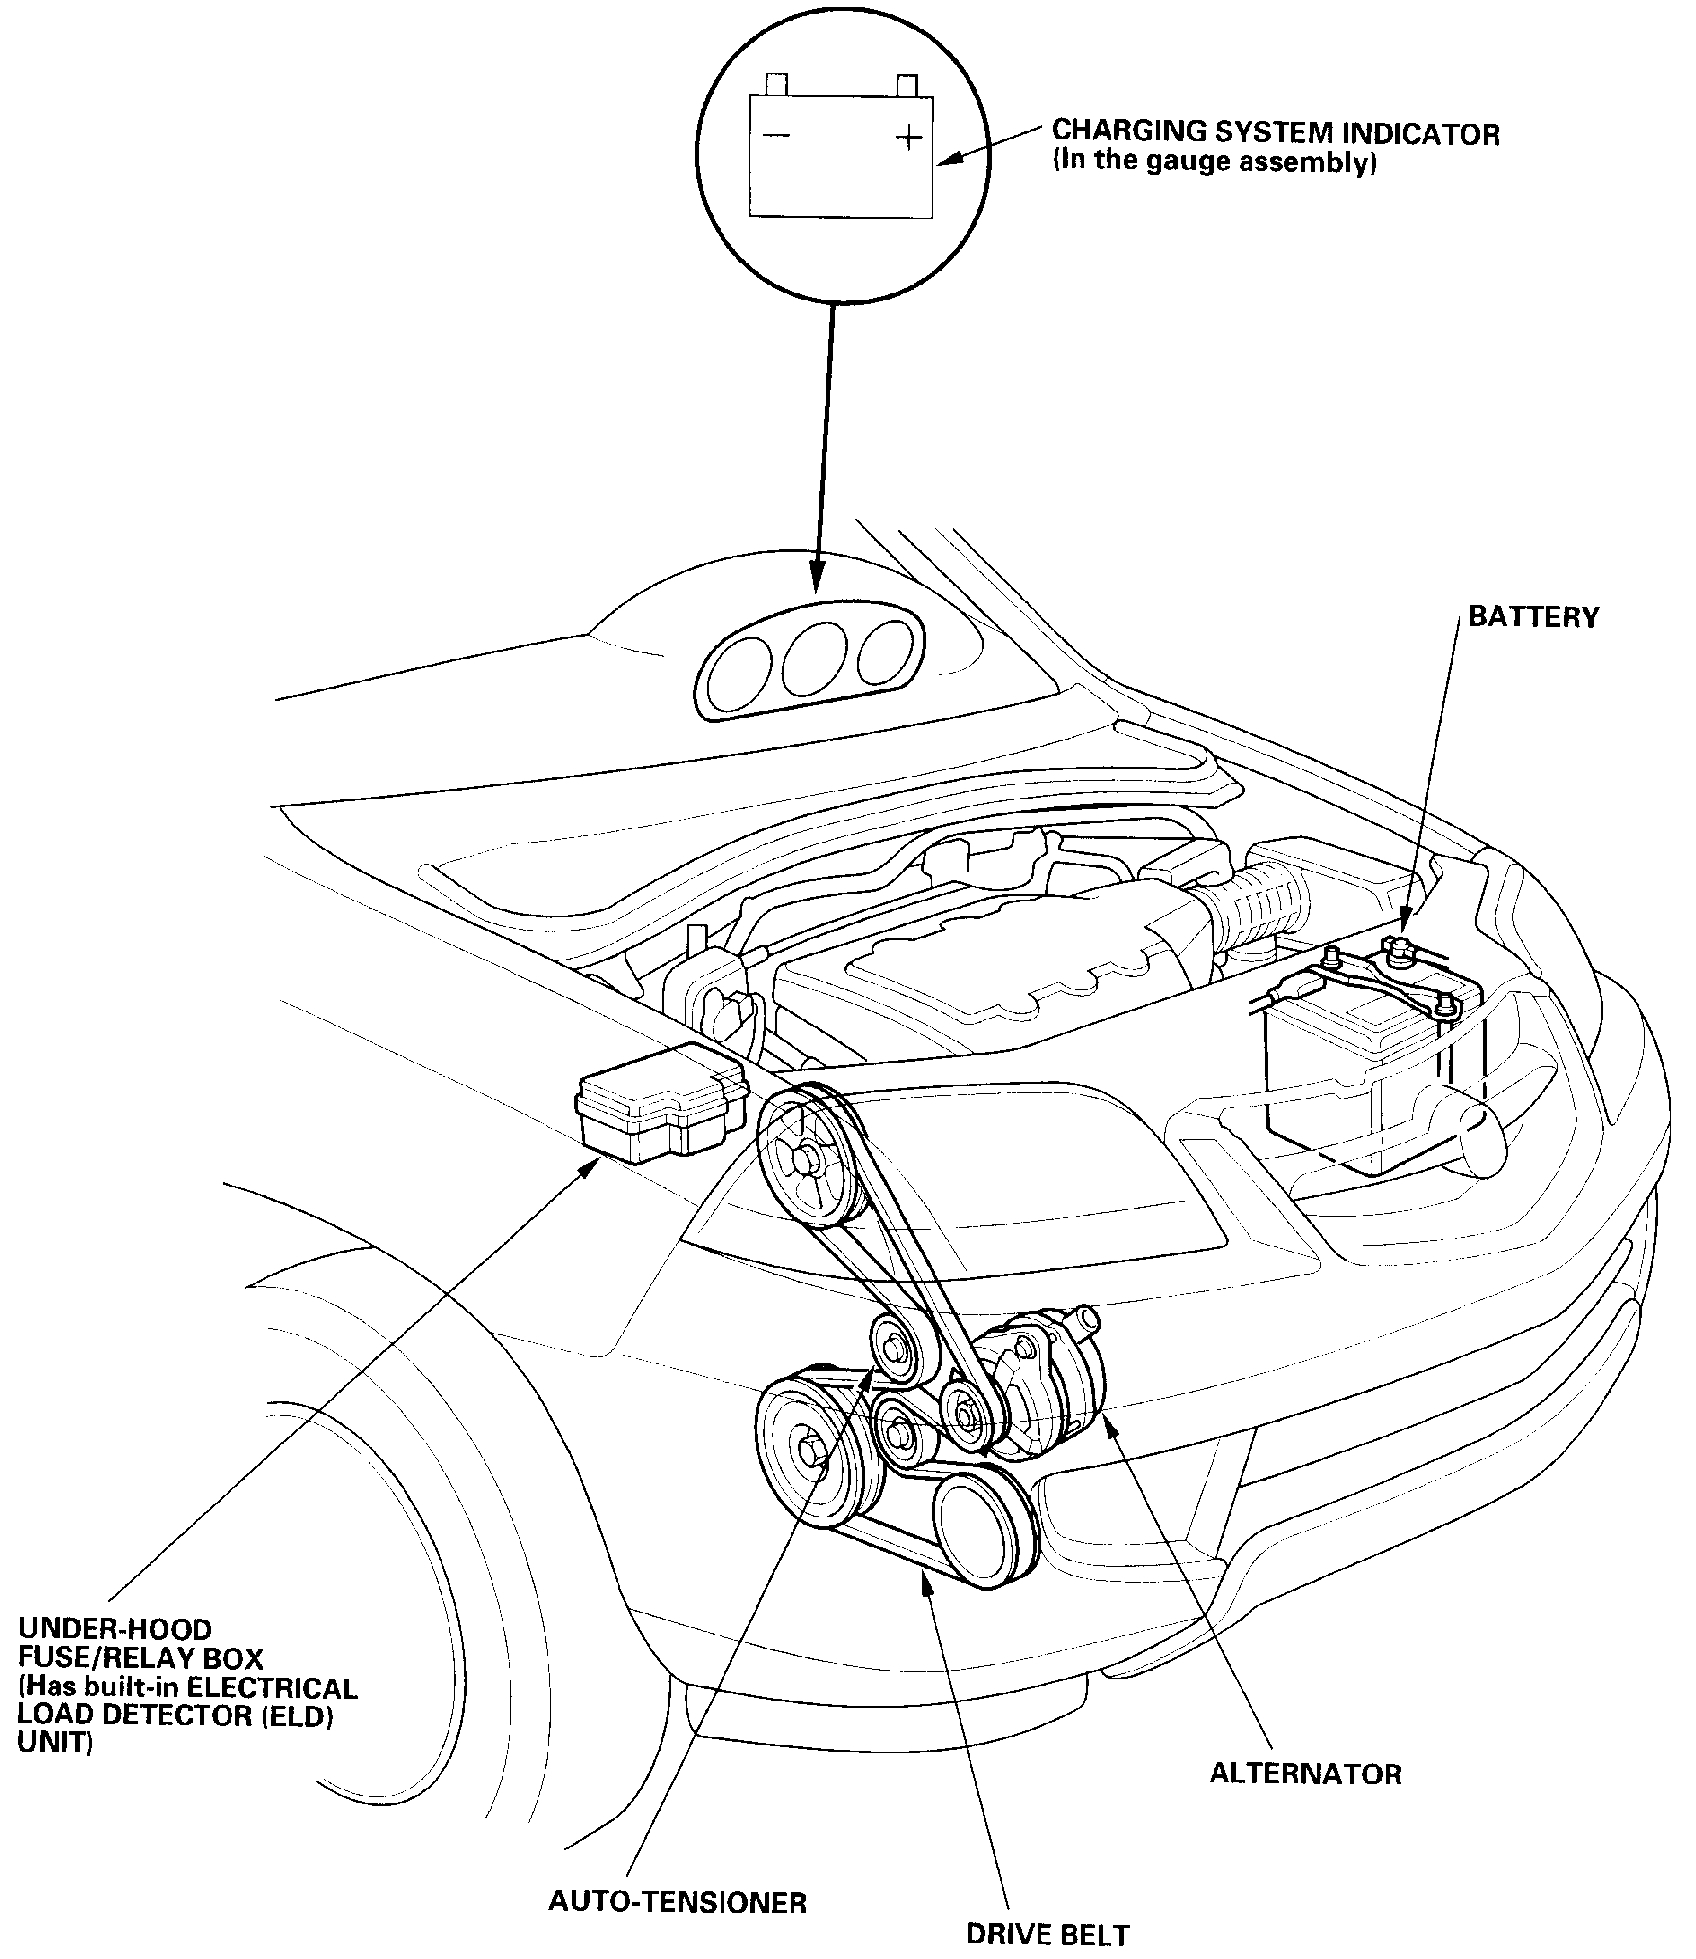 What Is The Serpentine Belt Configuration For My Car Manual Guide